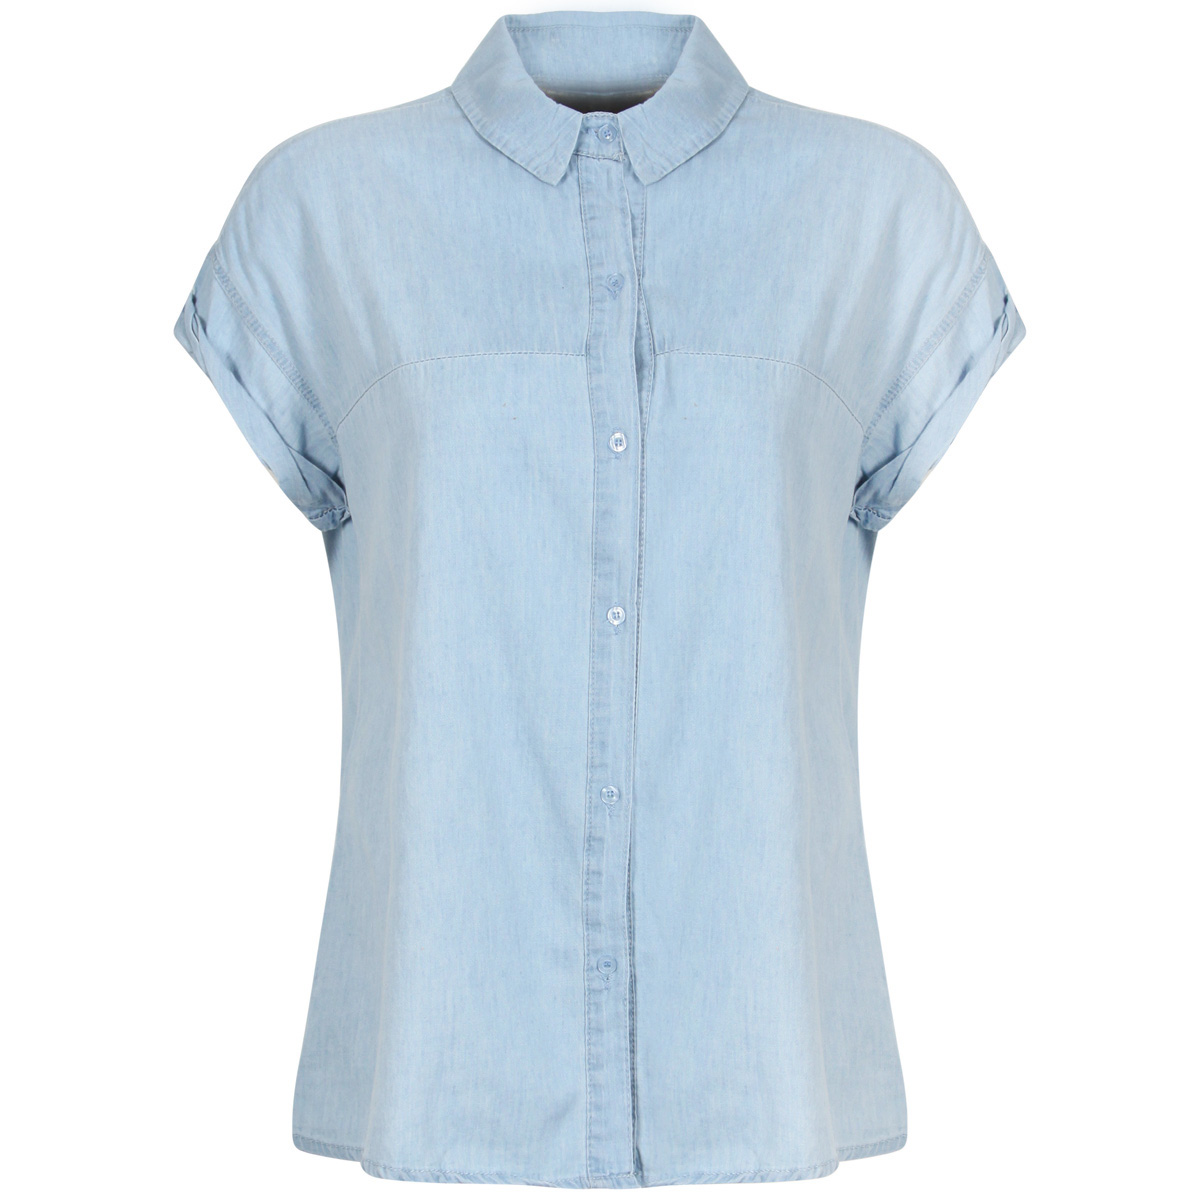 New womens light blue denim shirt button up short cap for Blue denim shirt for womens